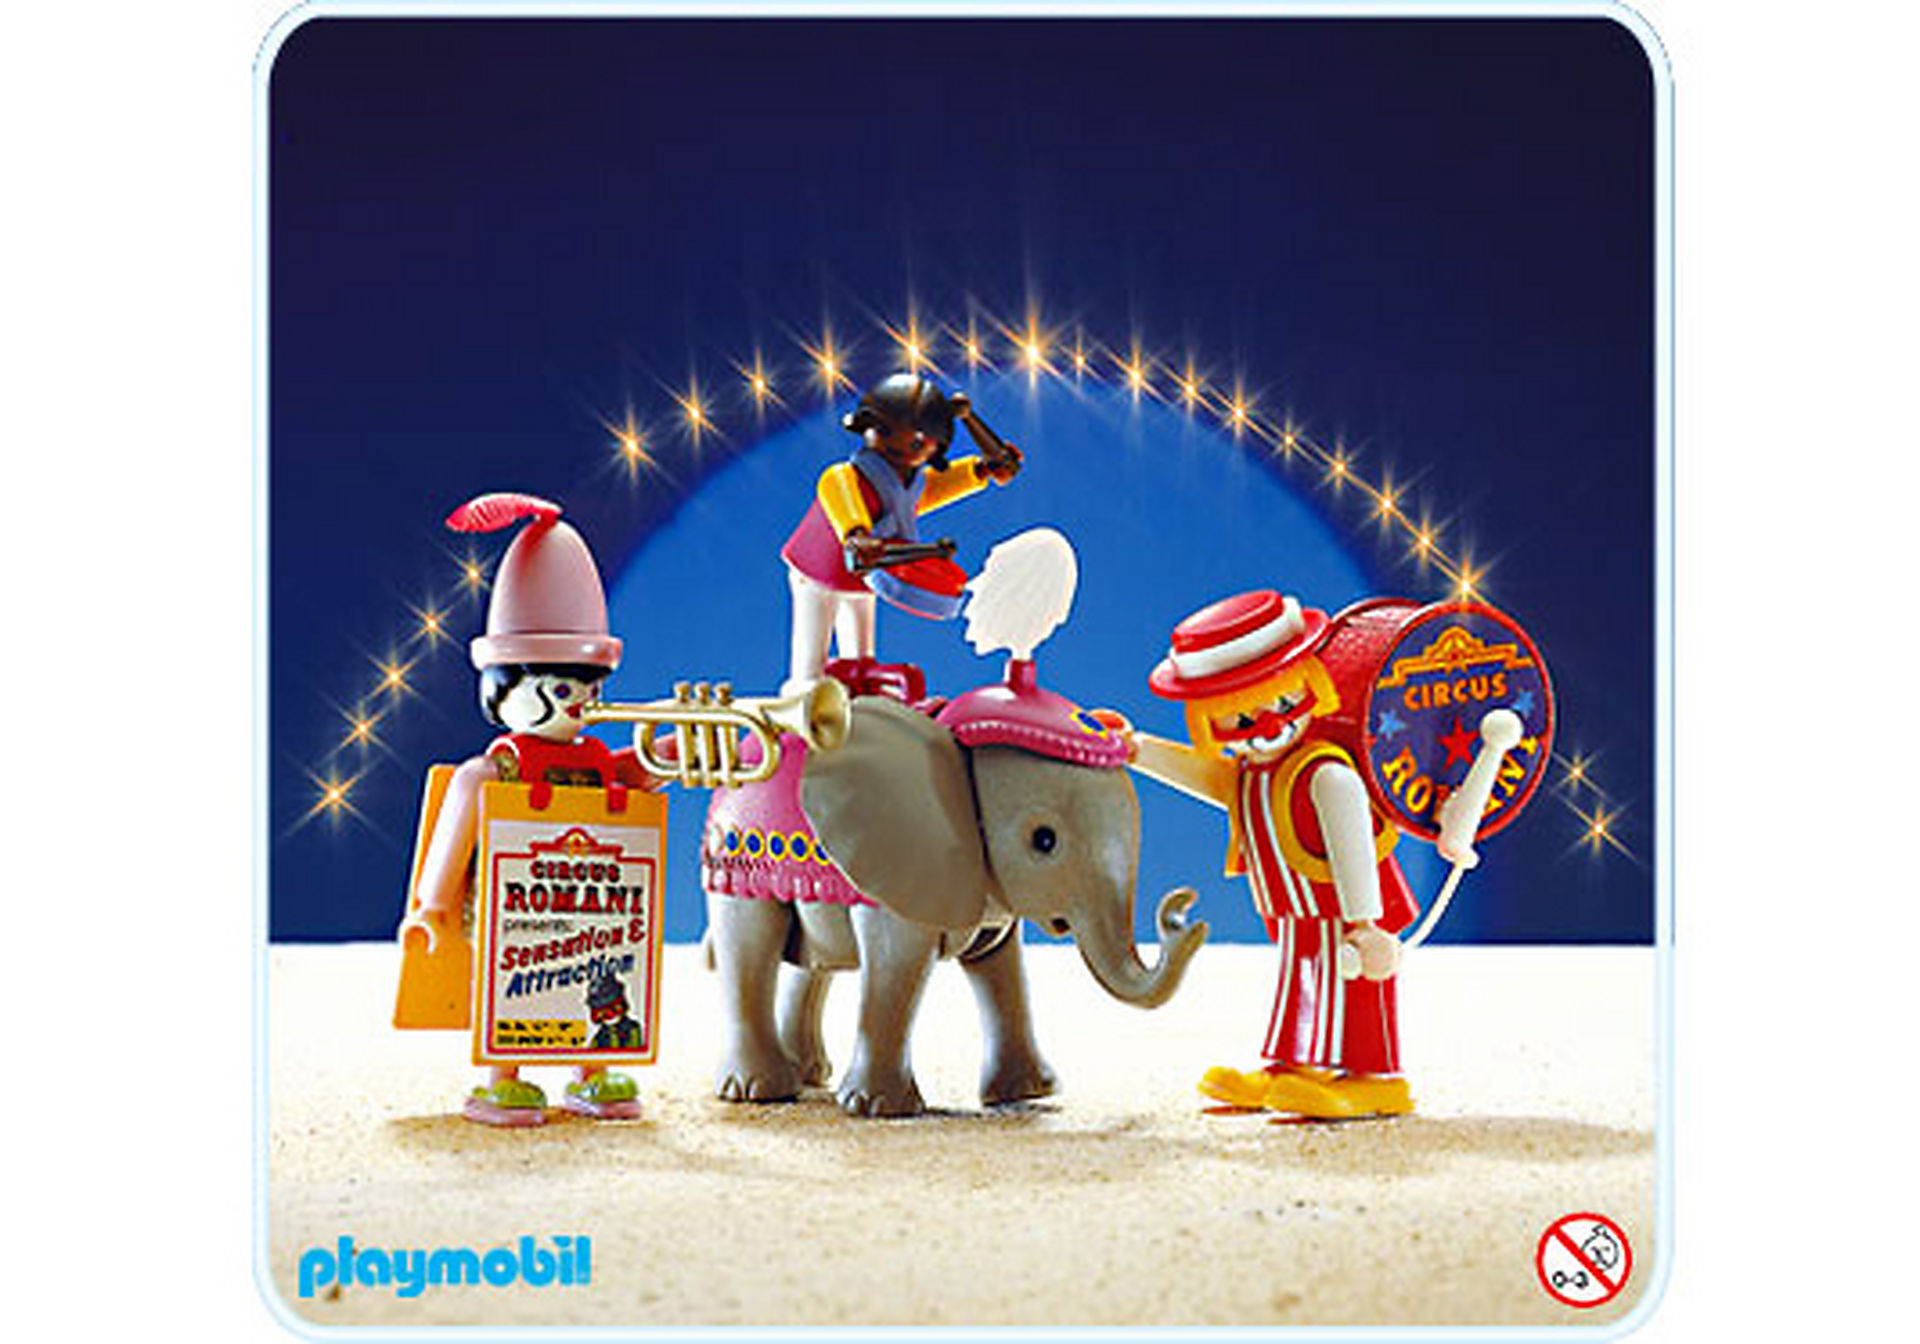 http://media.playmobil.com/i/playmobil/3797-A_product_detail/Clowns-Truppe